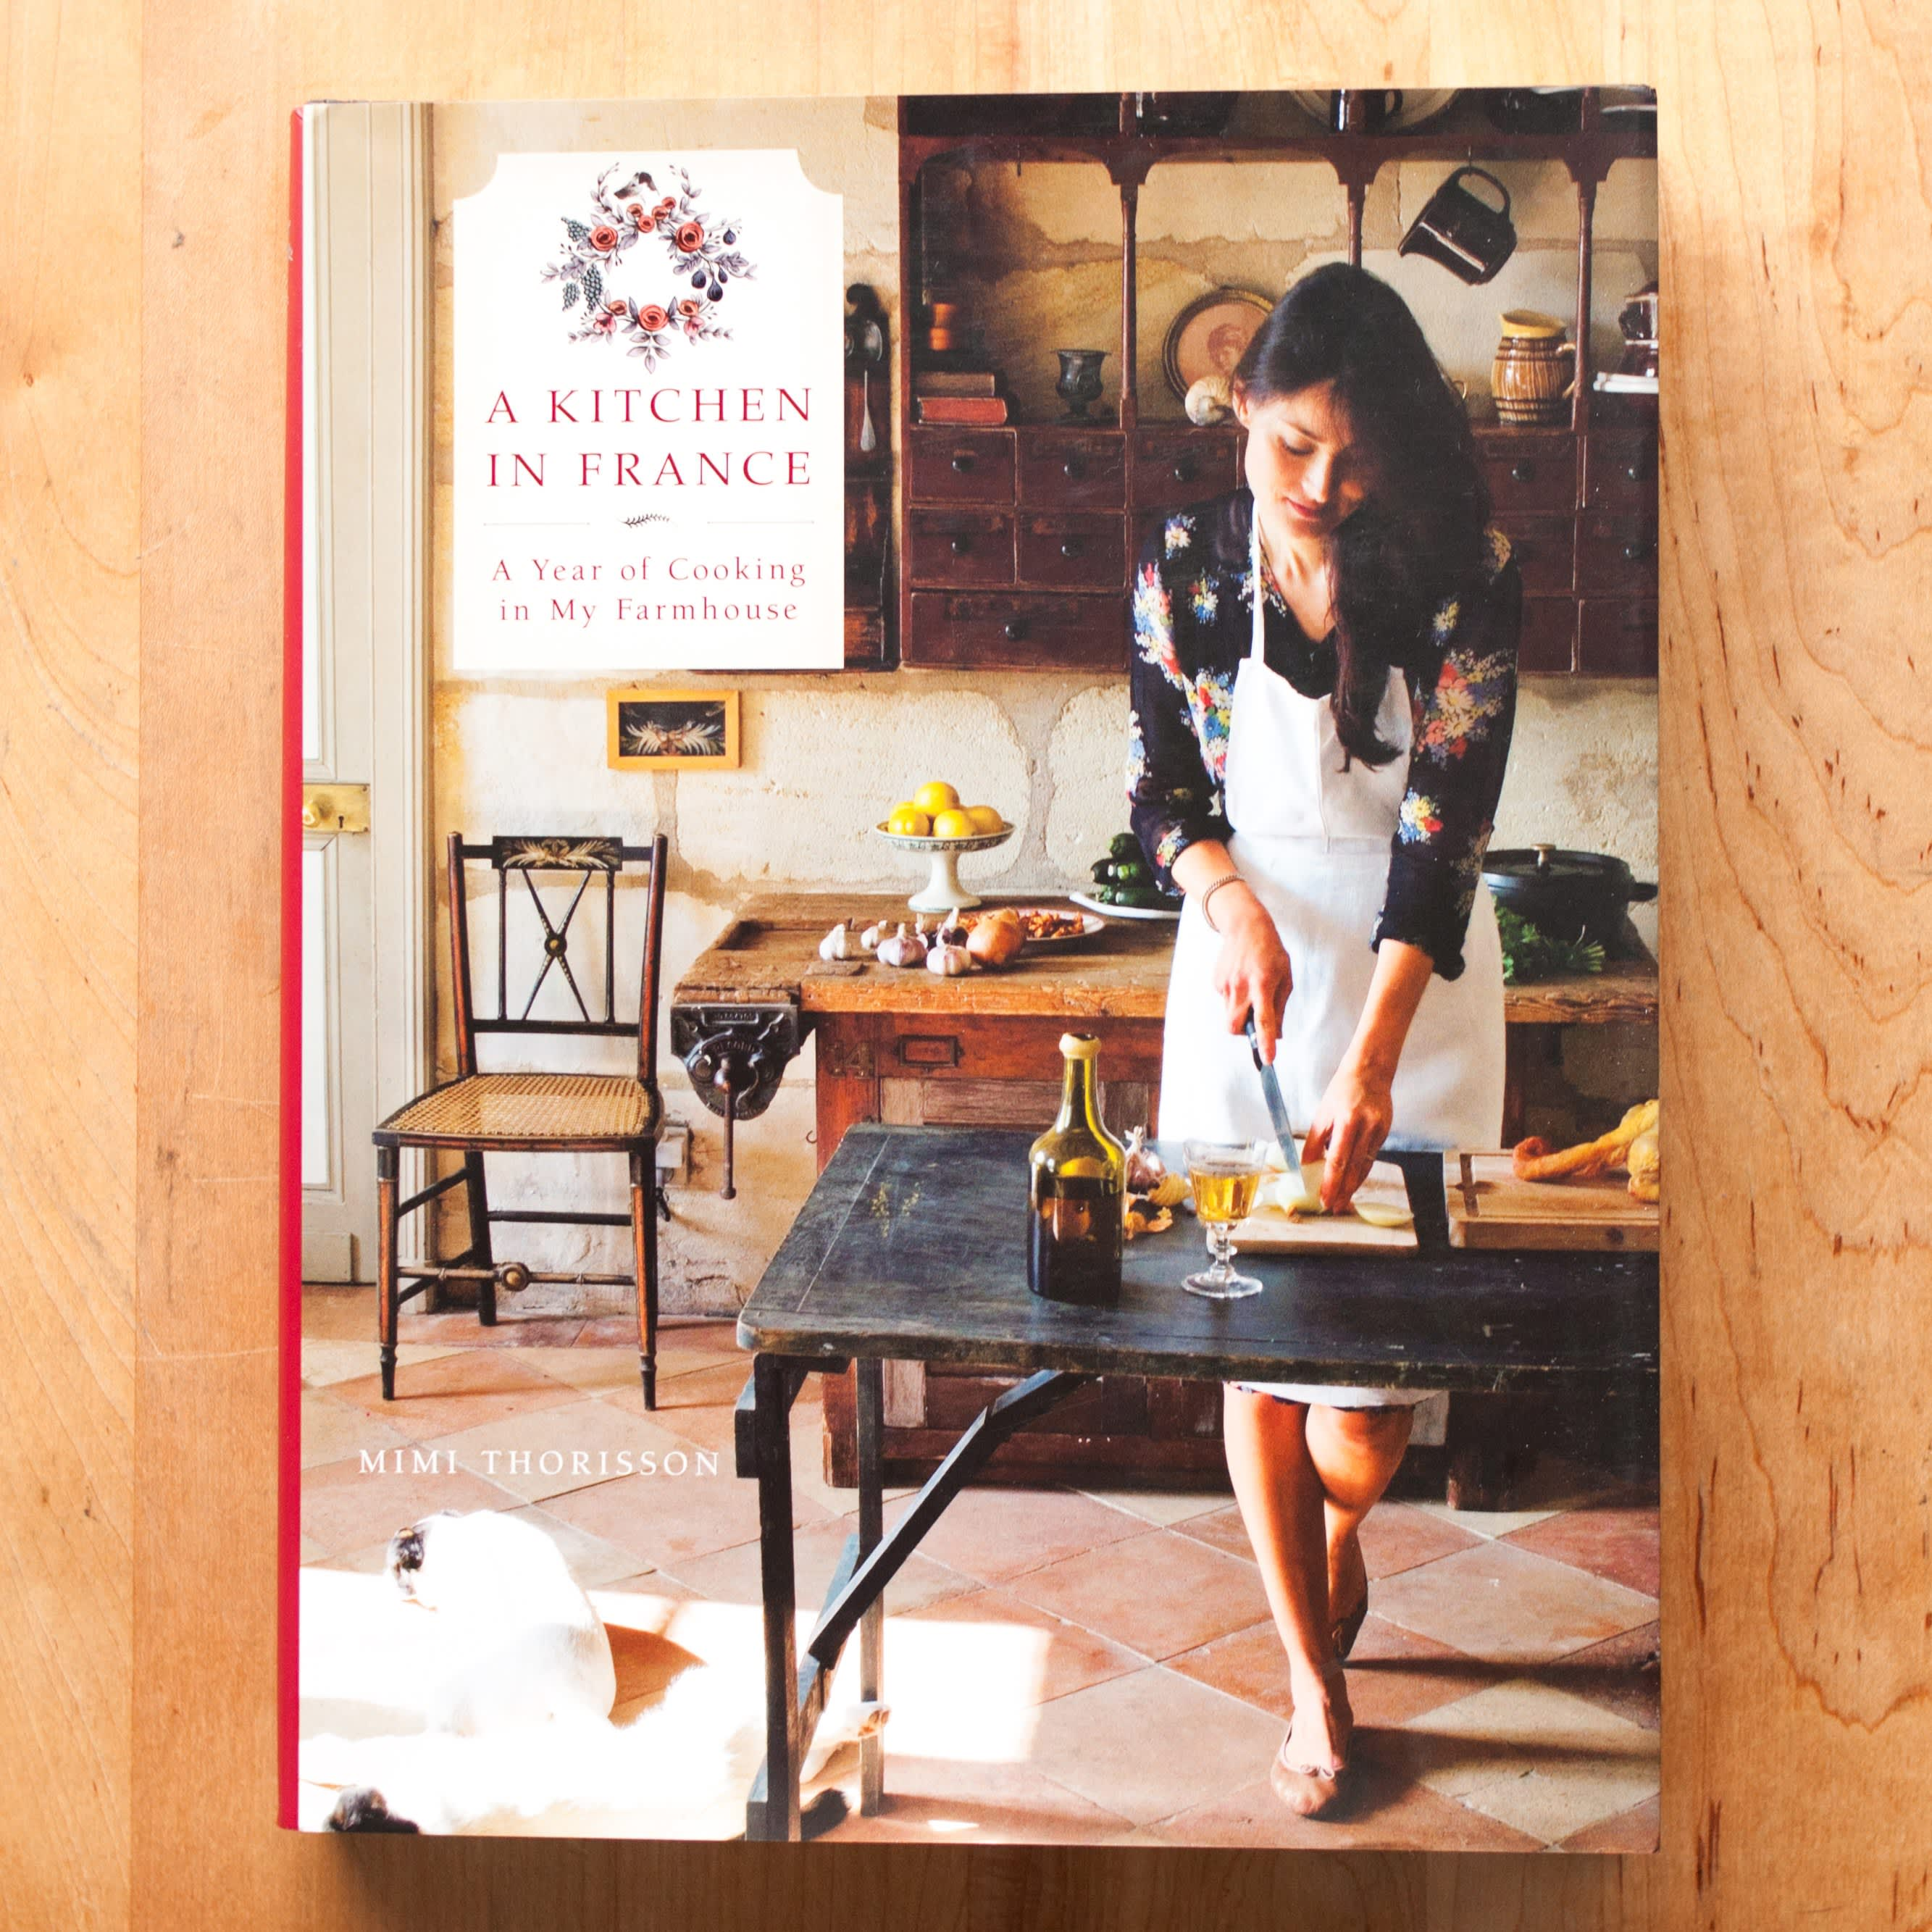 With This Cookbook, You Can Live the Dreamy French Farmhouse Life You've Always Wanted: gallery image 1